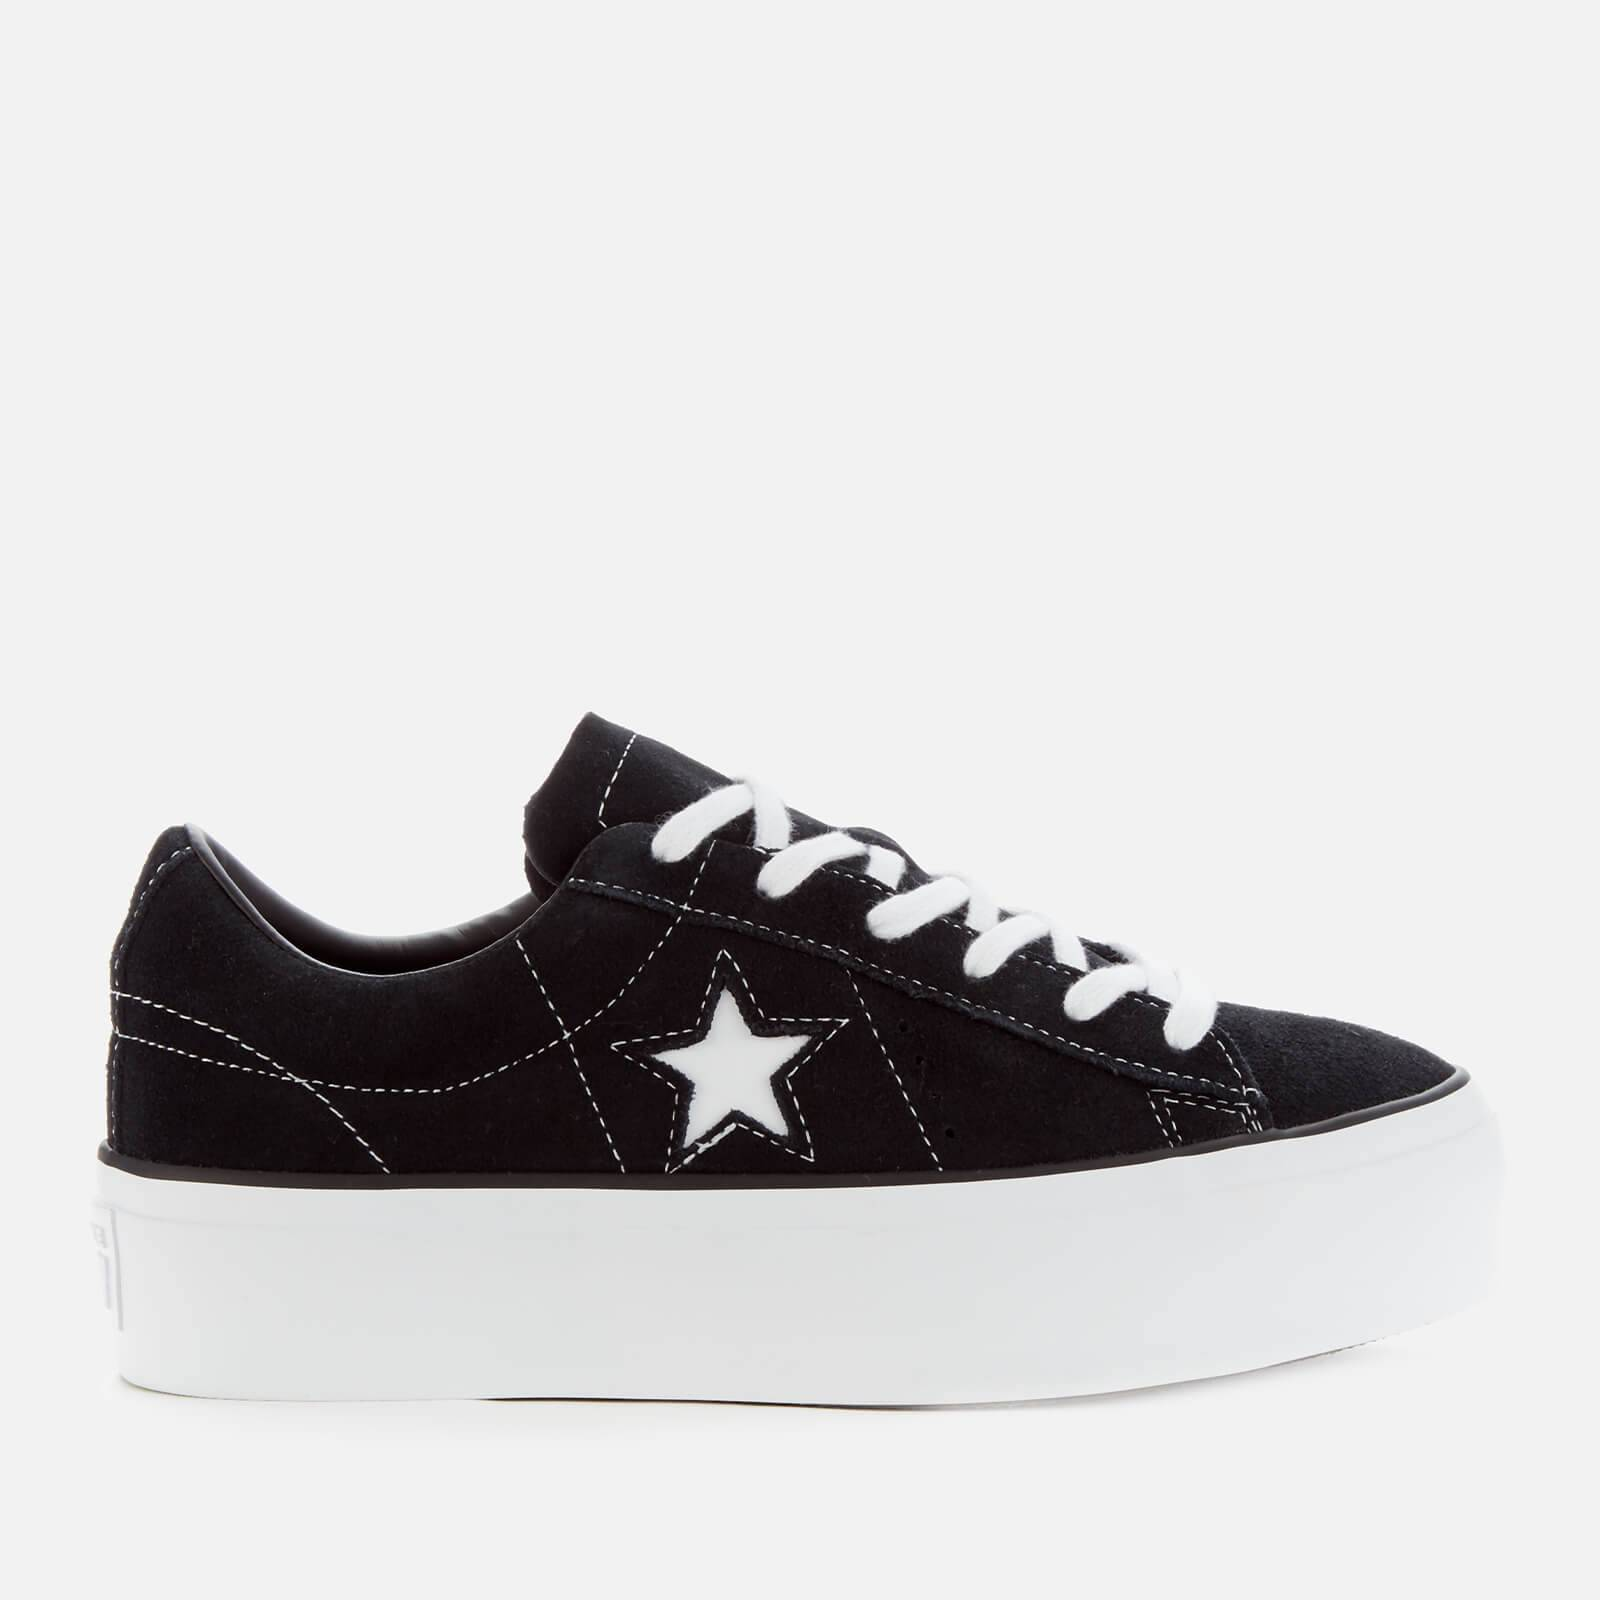 Converse Women's One Star Platform Ox Trainers - Black/Black/White - UK 3 - Black